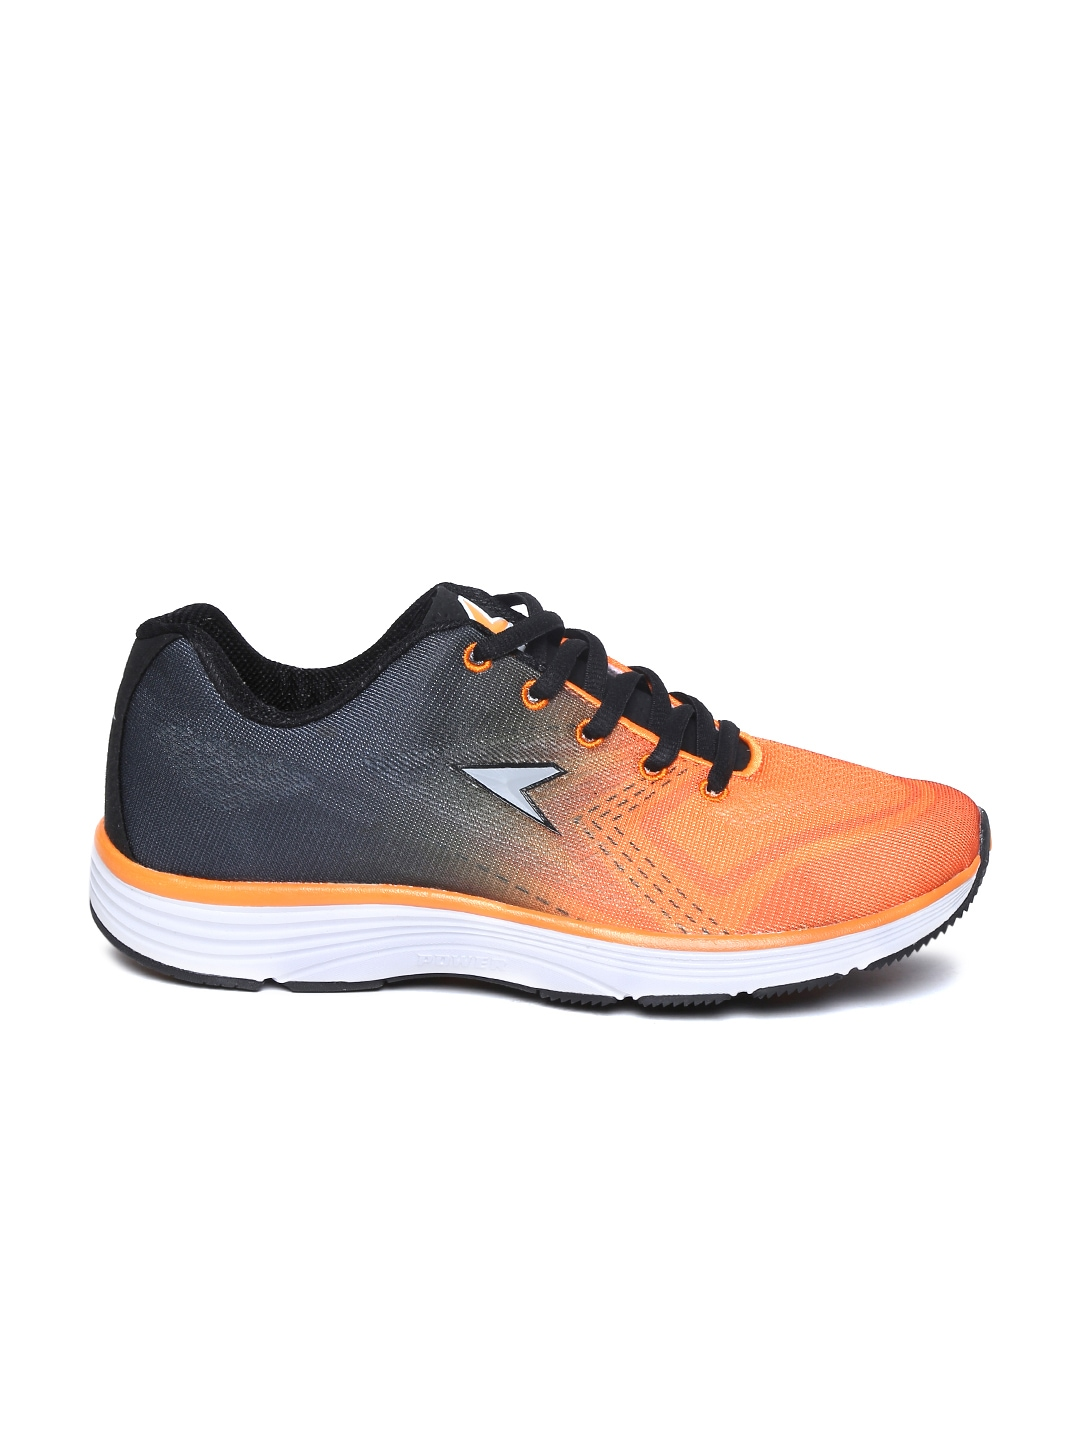 Power Lace Shoes Price